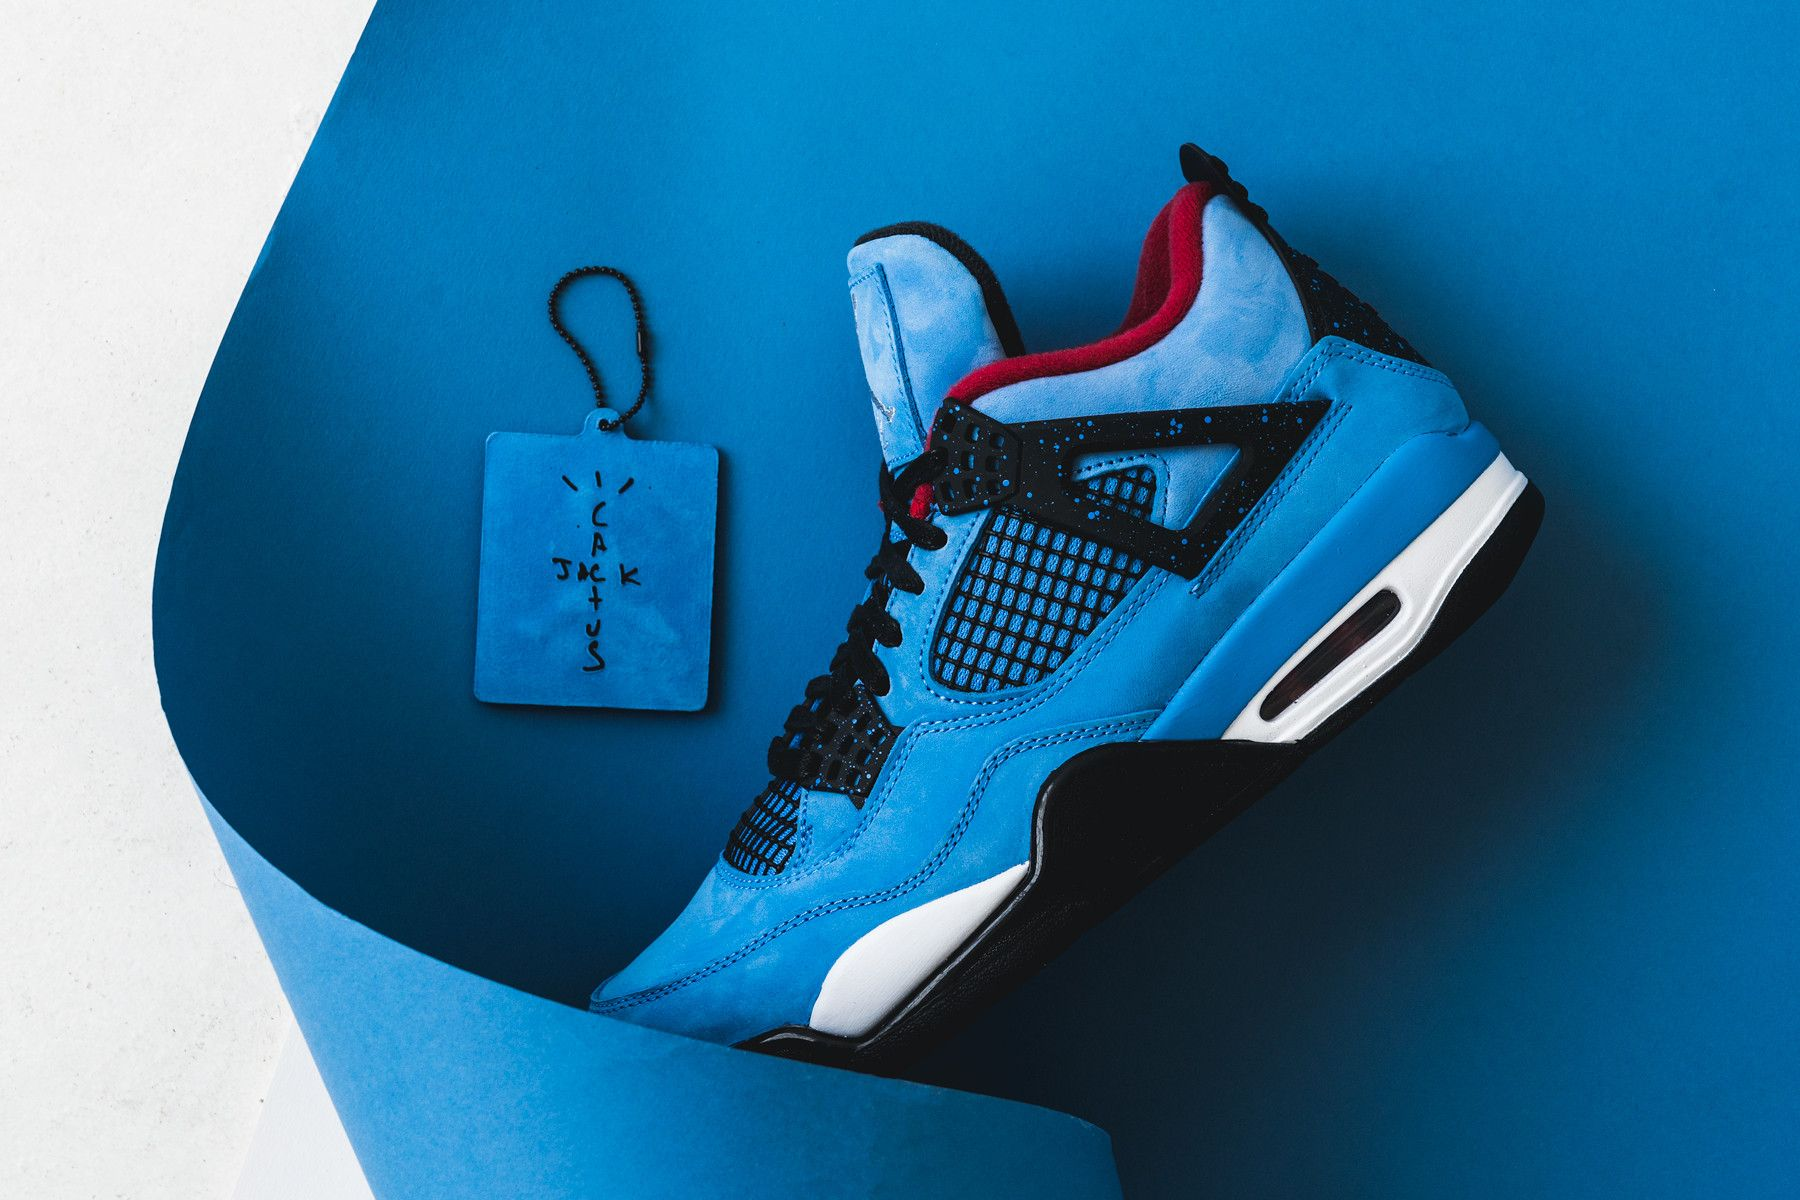 Here S A Closer Look At The Travis Scott X Air Jordan 4 Cactus Jack Air Jordans Jordans Jordan 4